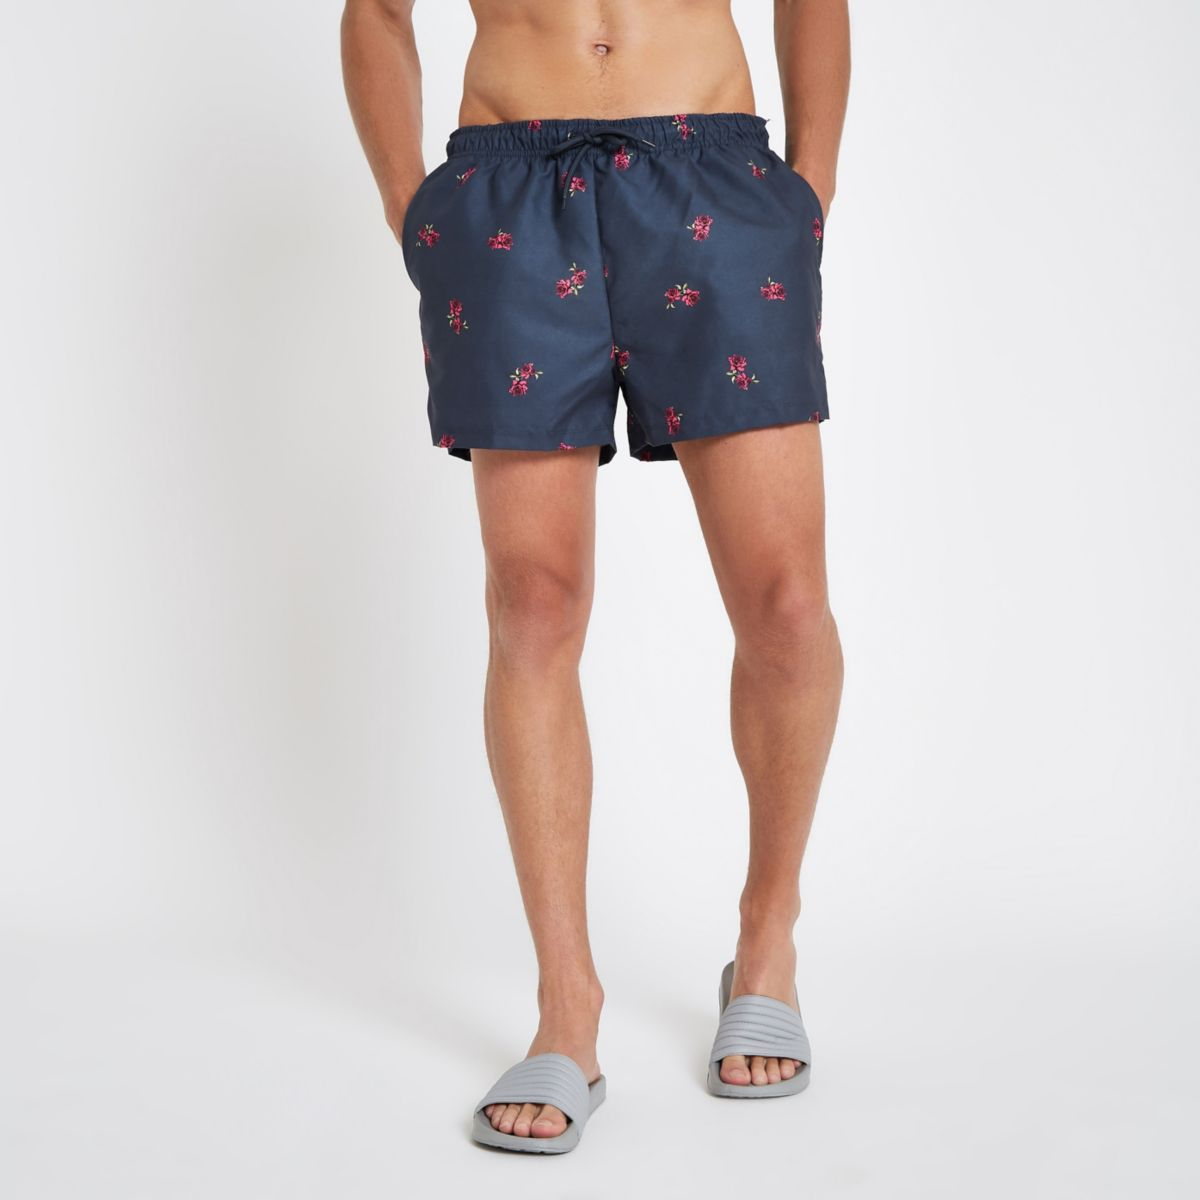 Navy rose print swim shorts